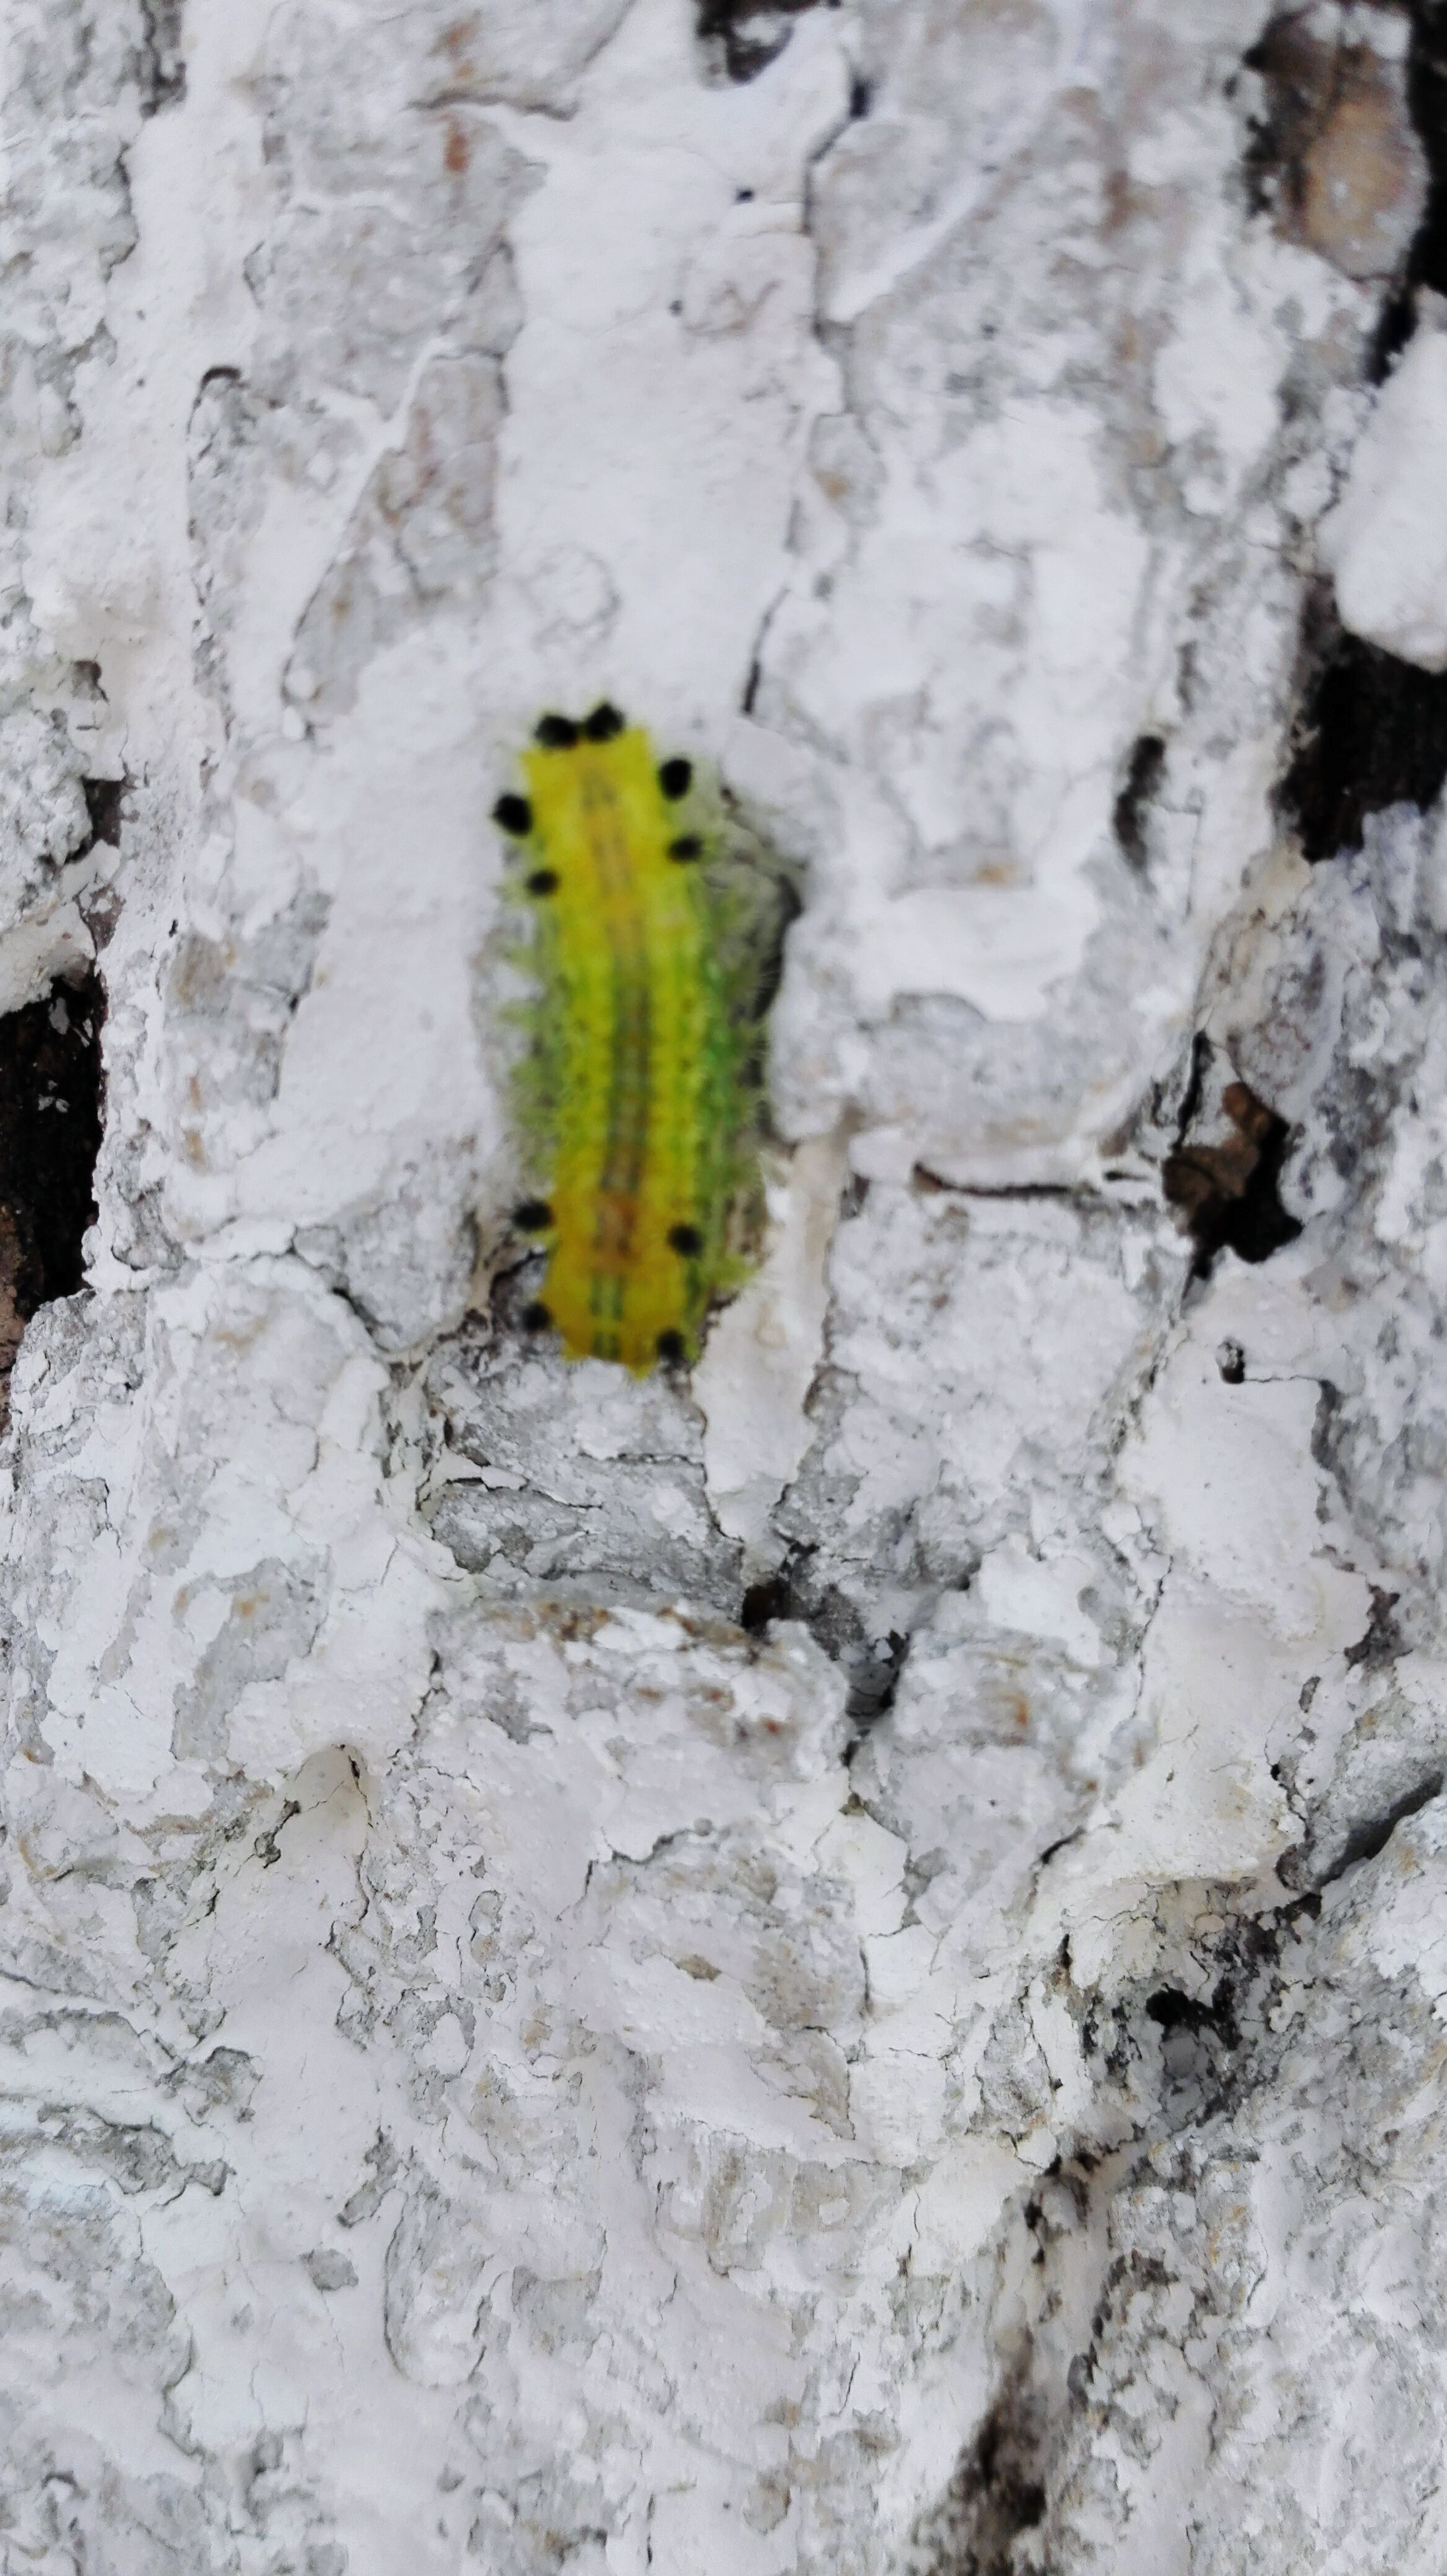 green color, textured, wall - building feature, growth, close-up, nature, rough, plant, tree trunk, day, rock - object, outdoors, no people, green, yellow, moss, animals in the wild, growing, beauty in nature, insect